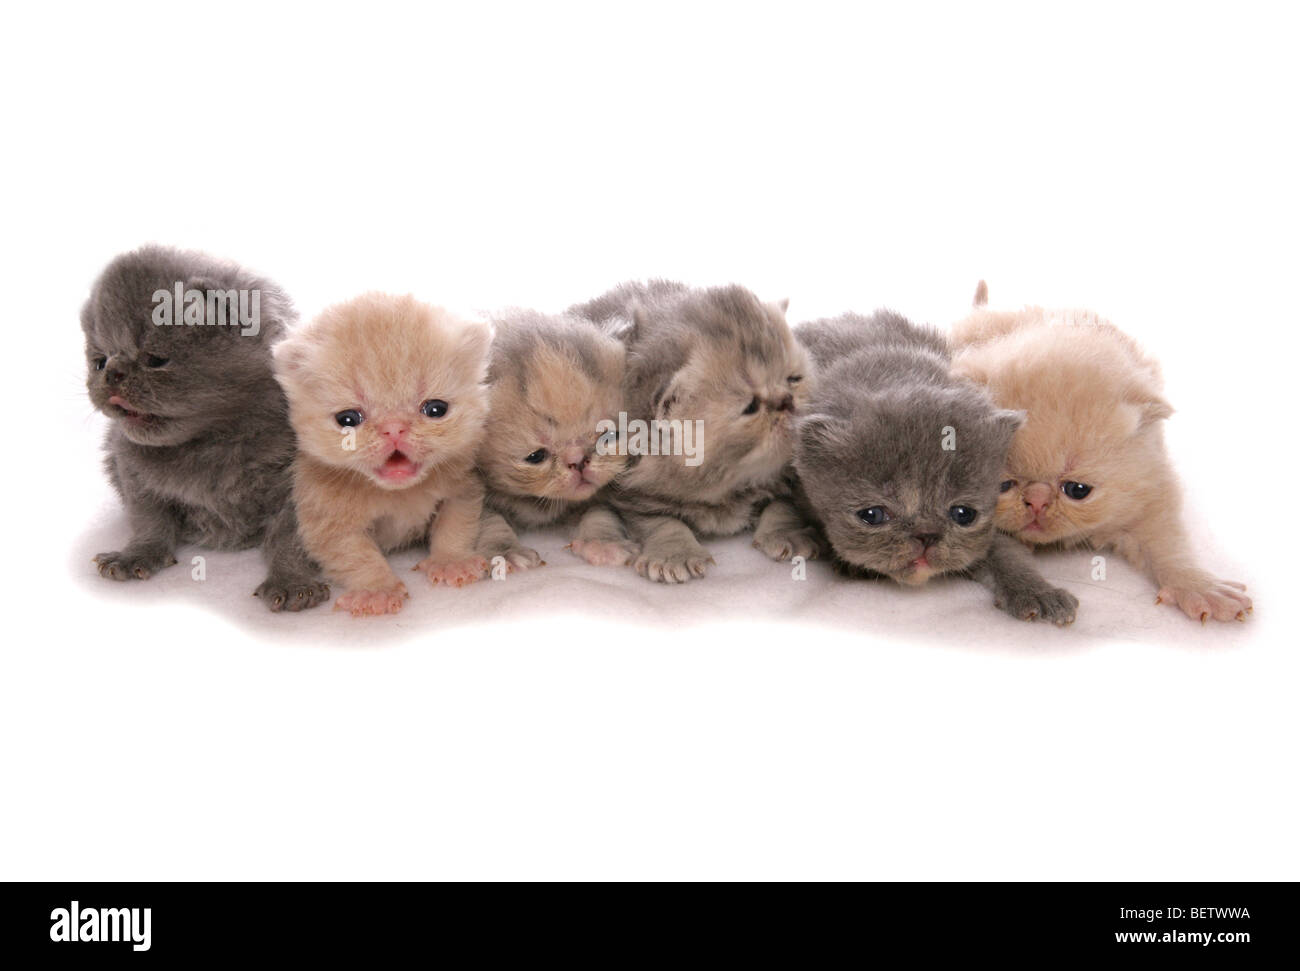 Exotic Shorthair Kittens Stock Photos & Exotic Shorthair Kittens